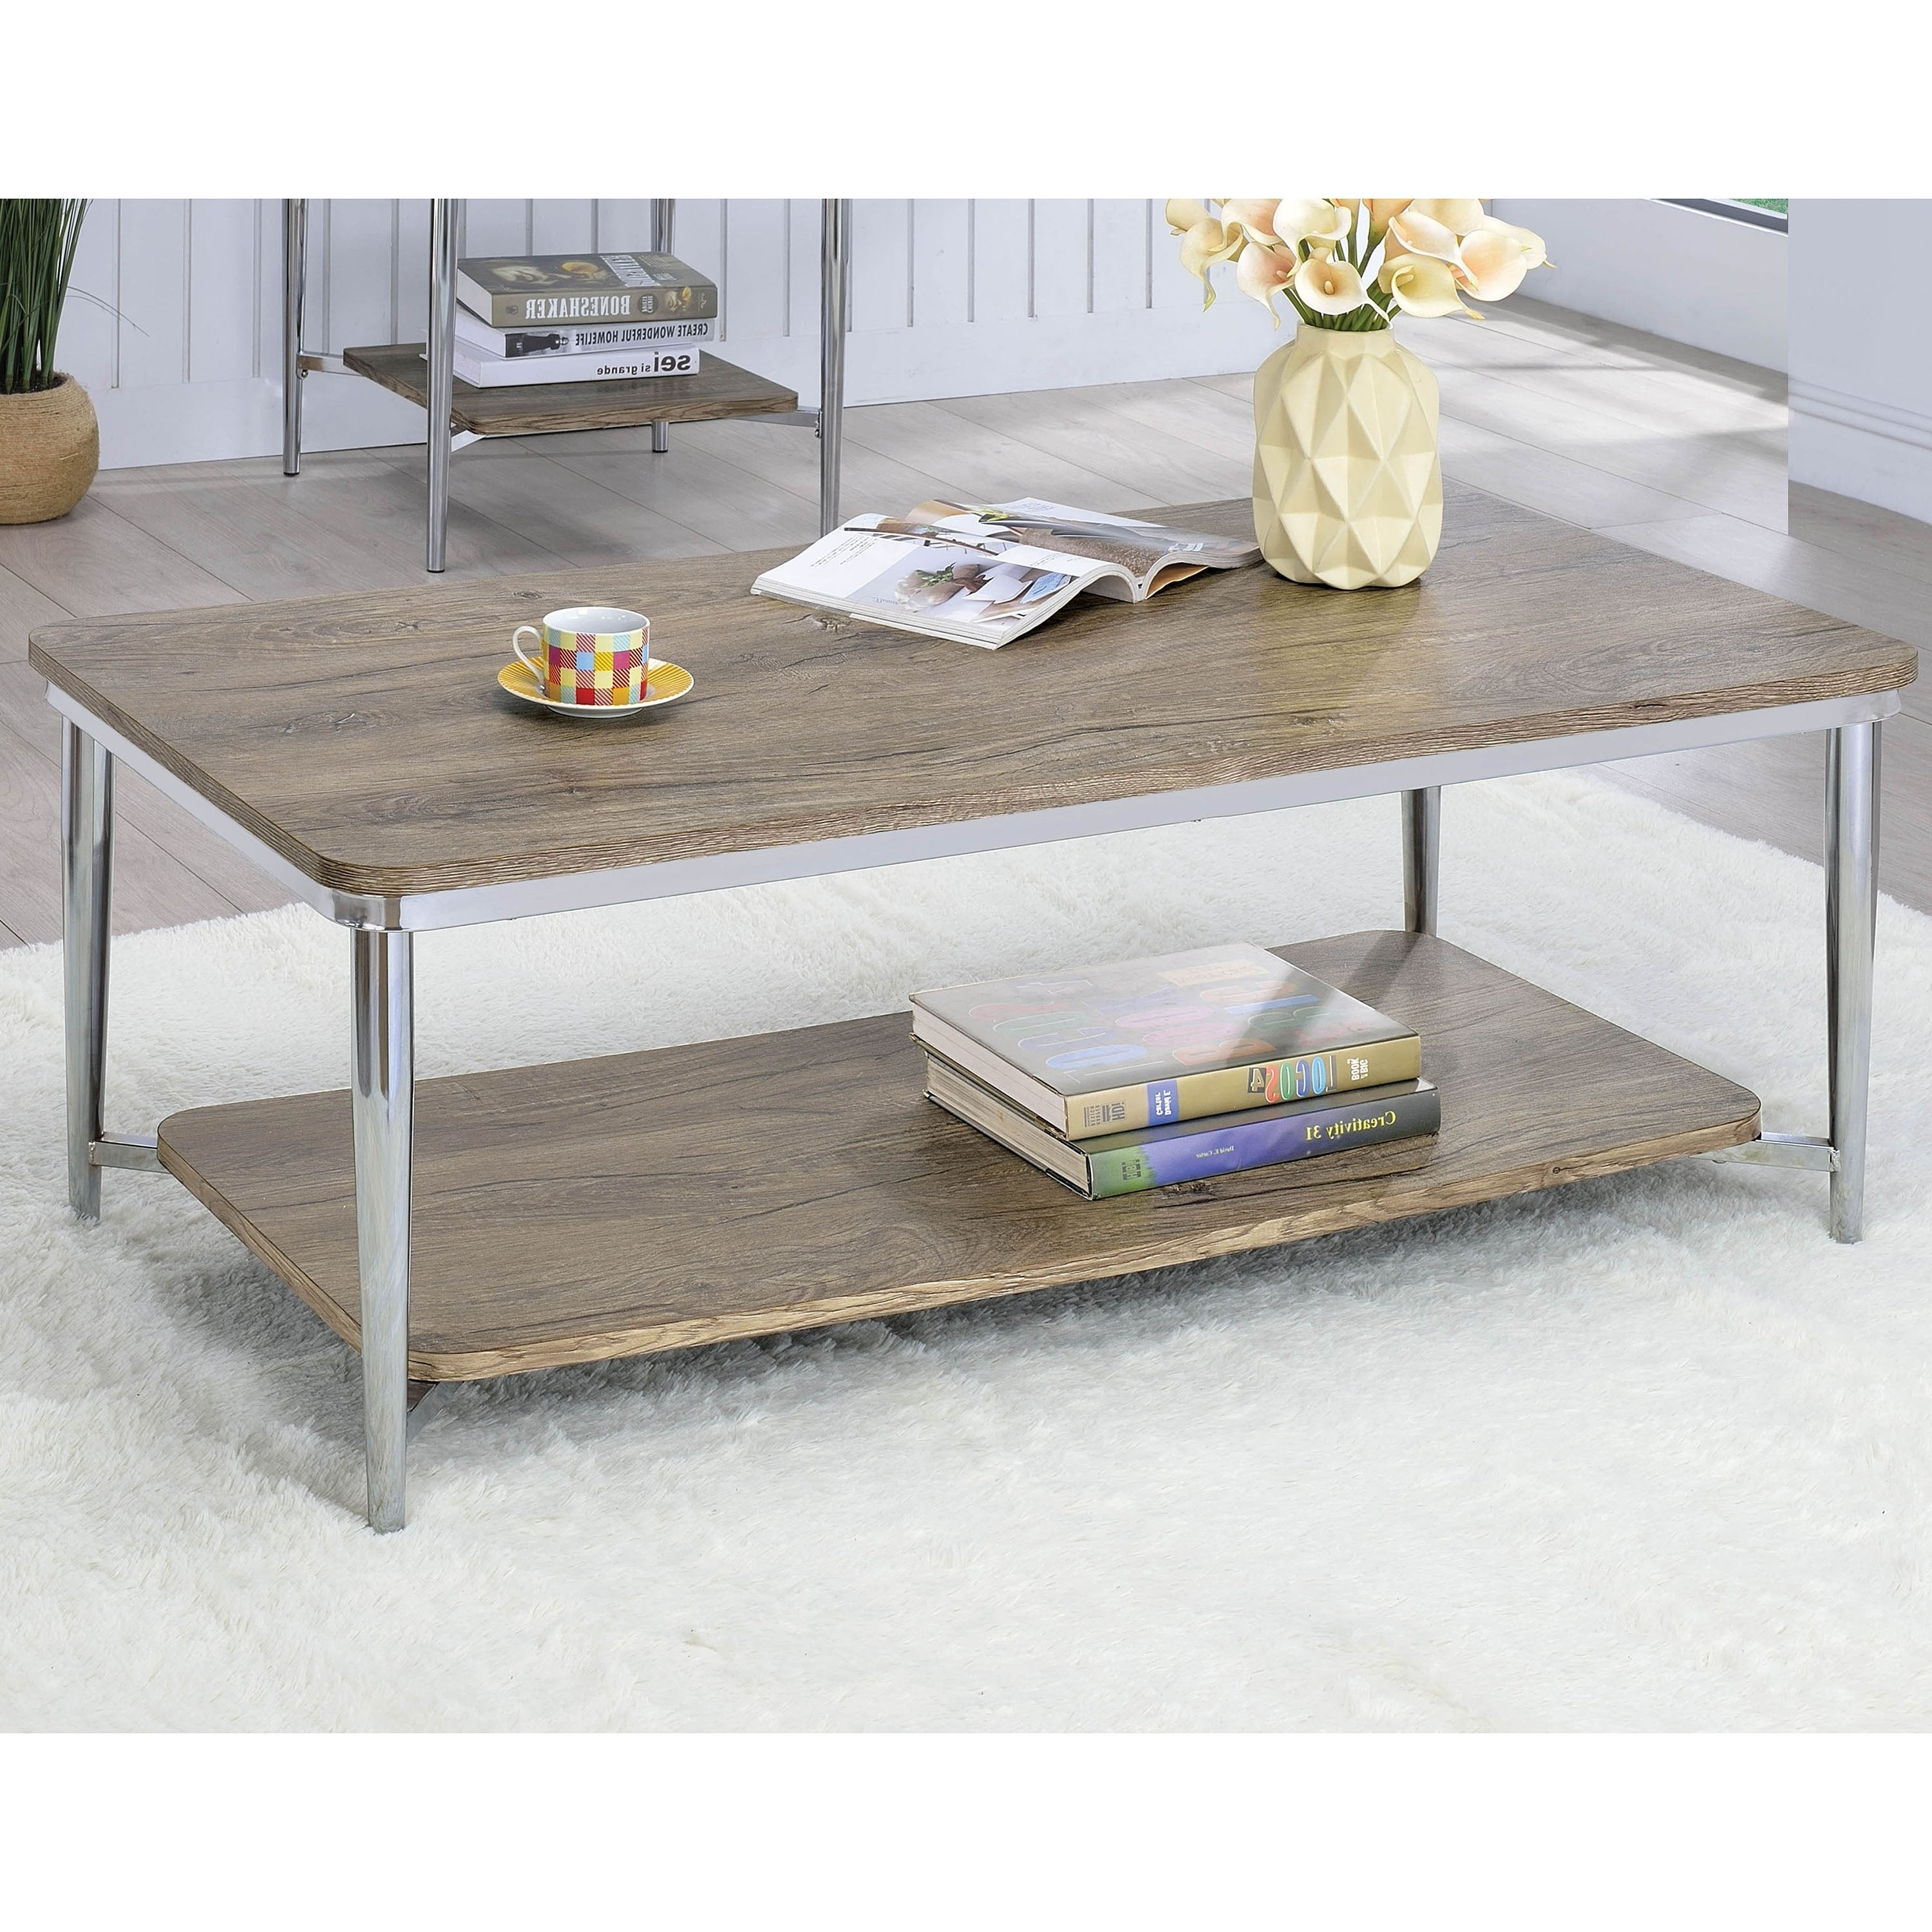 Marlo Contemporary Chrome Coffee Tablefoa Throughout Favorite Thalberg Contemporary Chrome Coffee Tables By Foa (View 7 of 20)